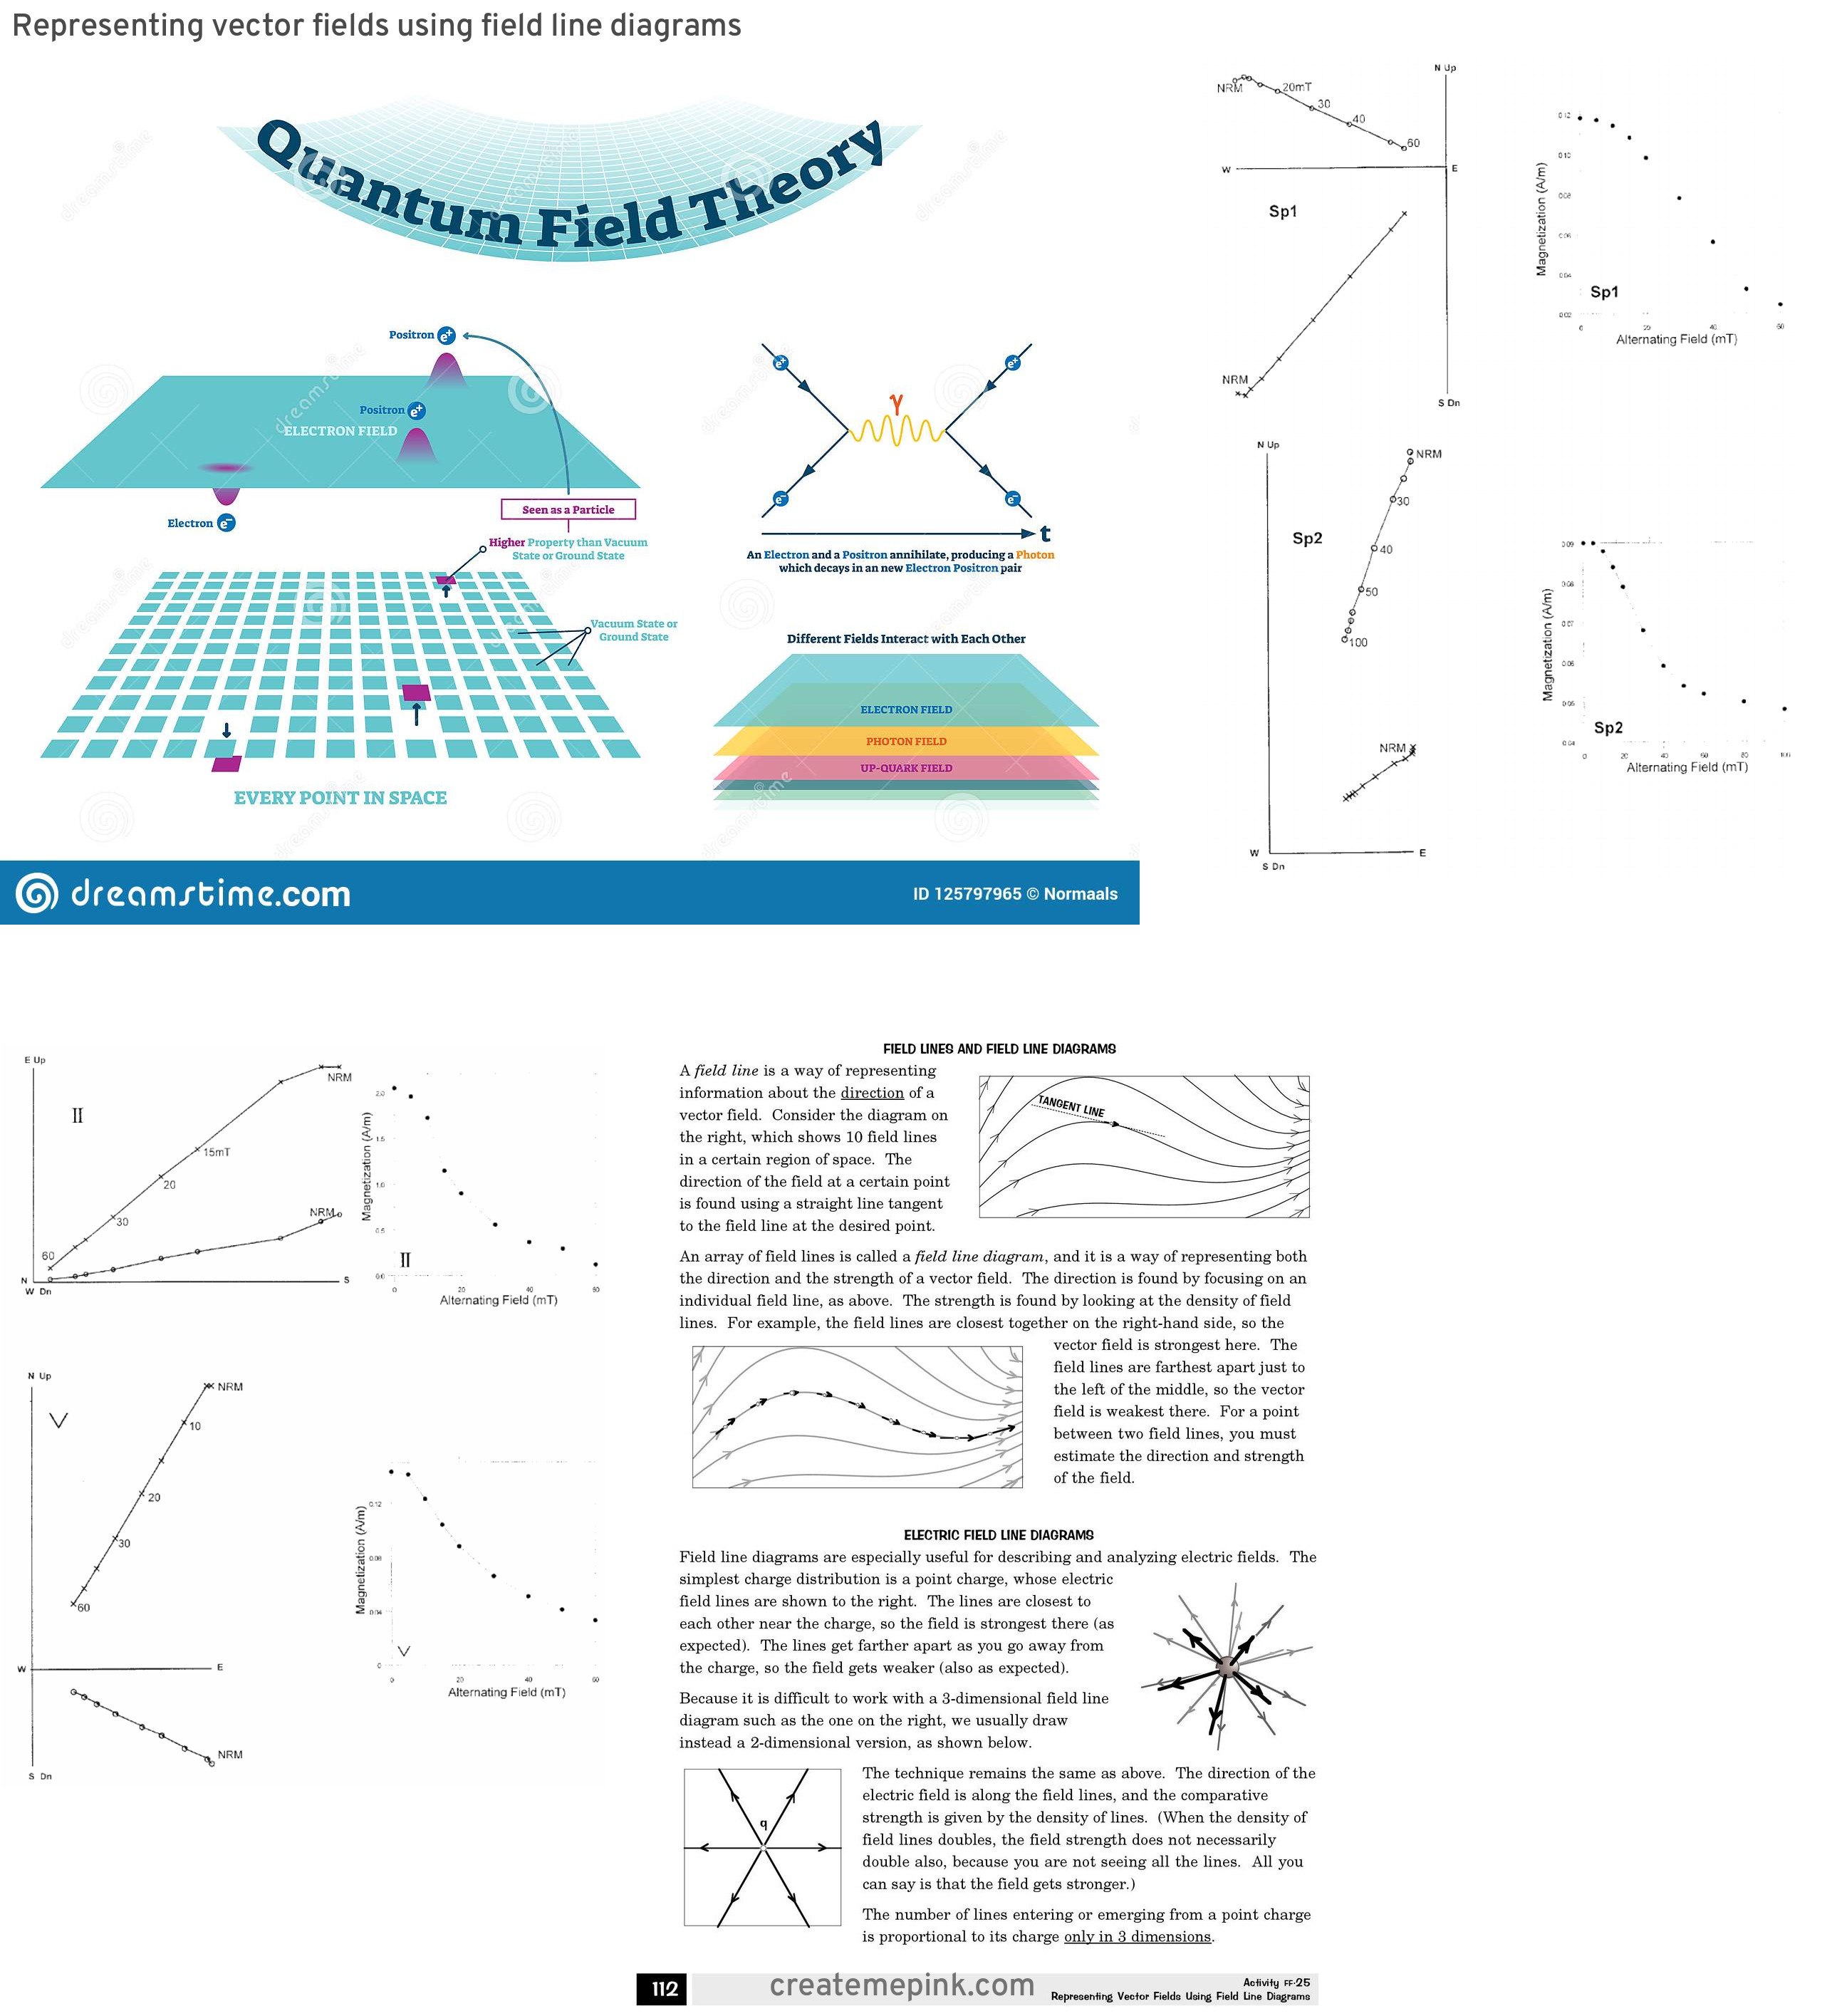 Field Vector Diagrams: Representing Vector Fields Using Field Line Diagrams